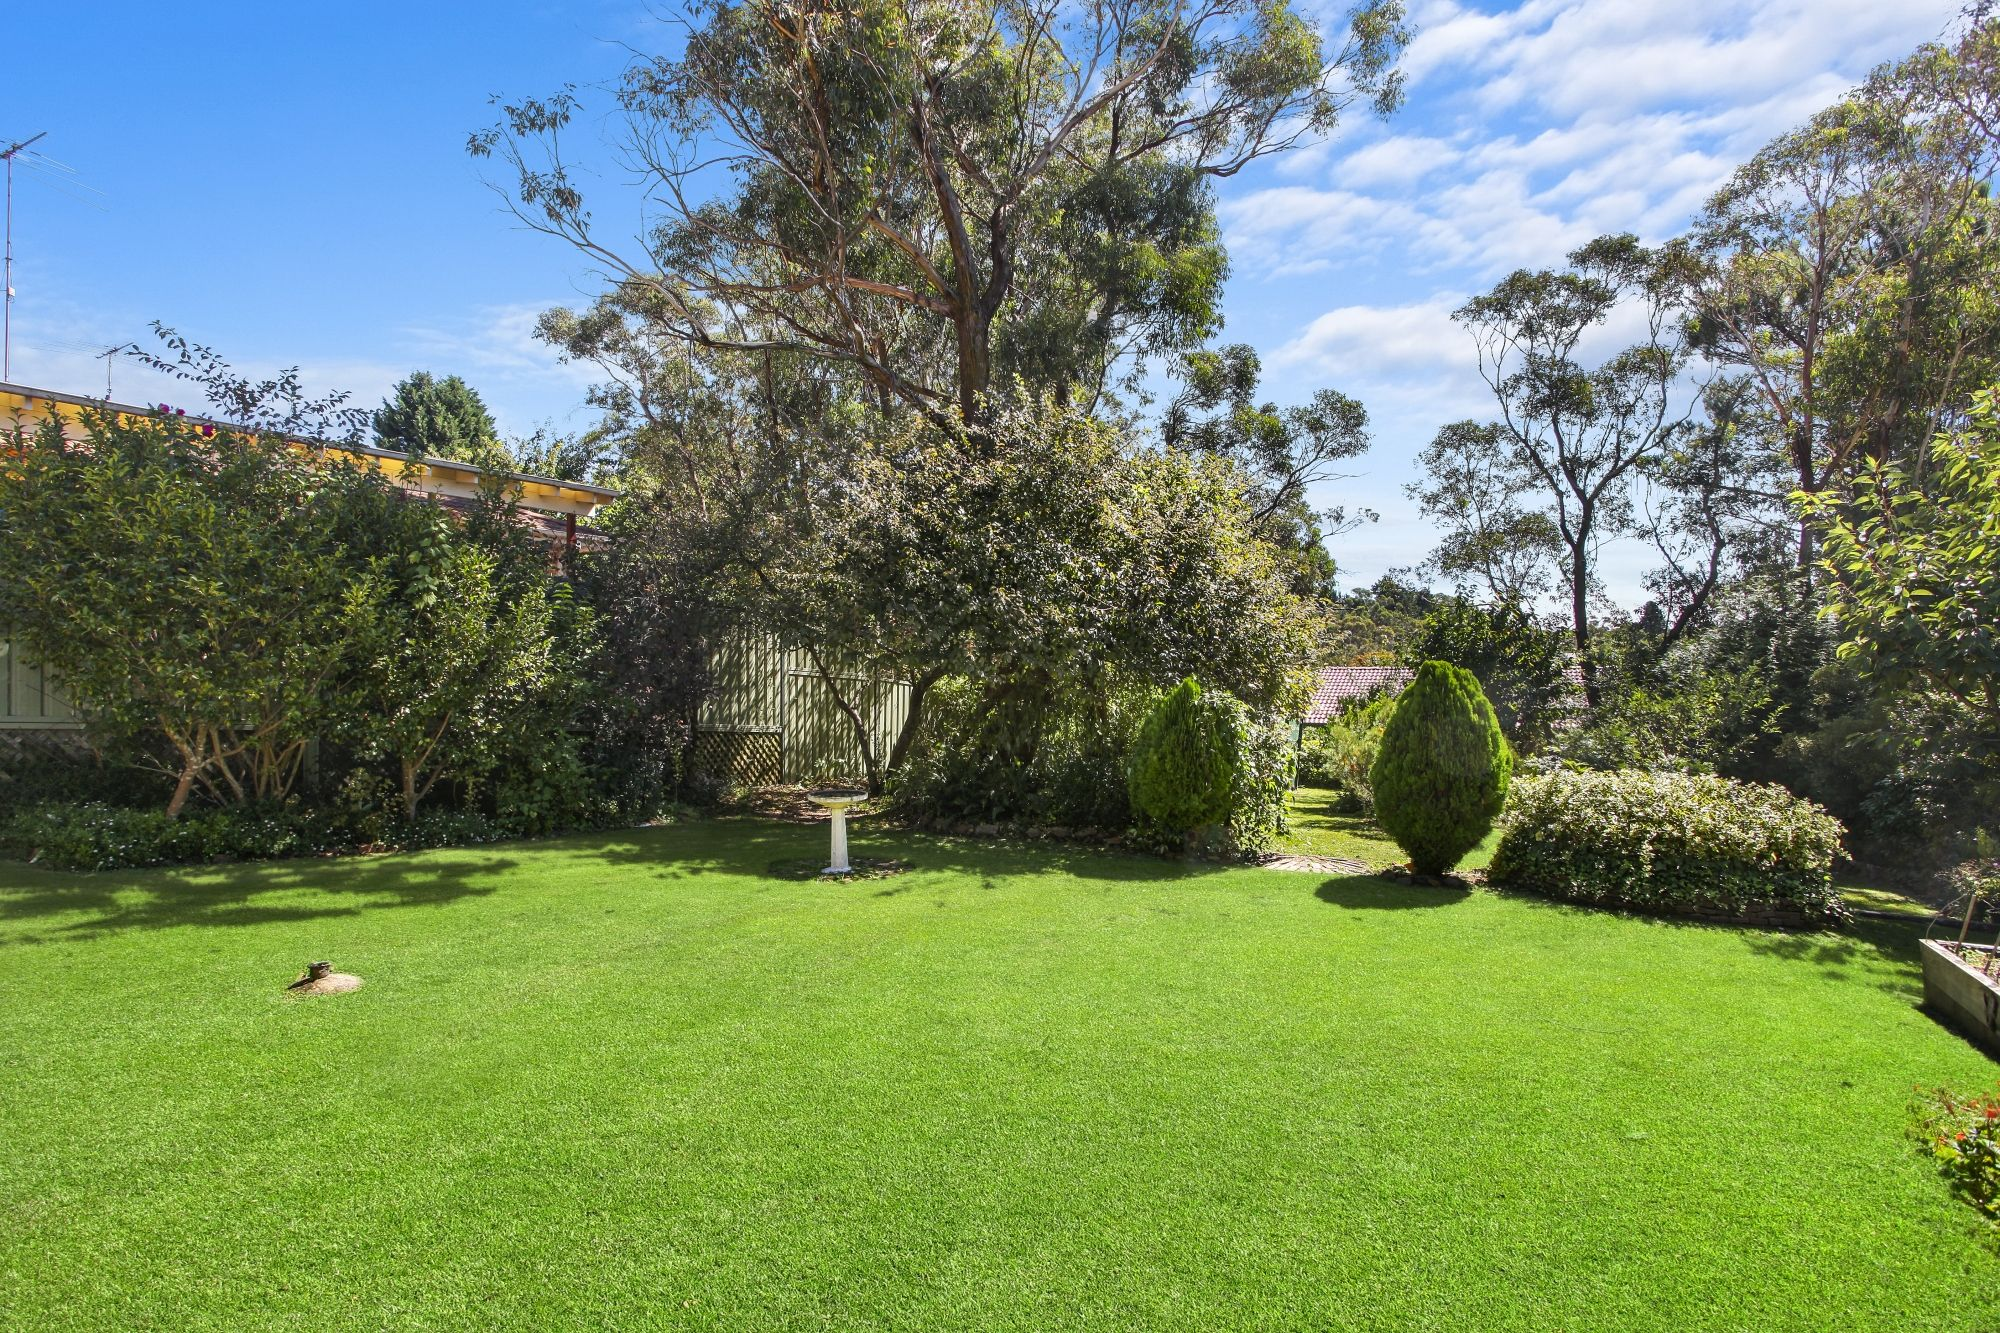 115 Sinclair Crescent Wentworth Falls 2782